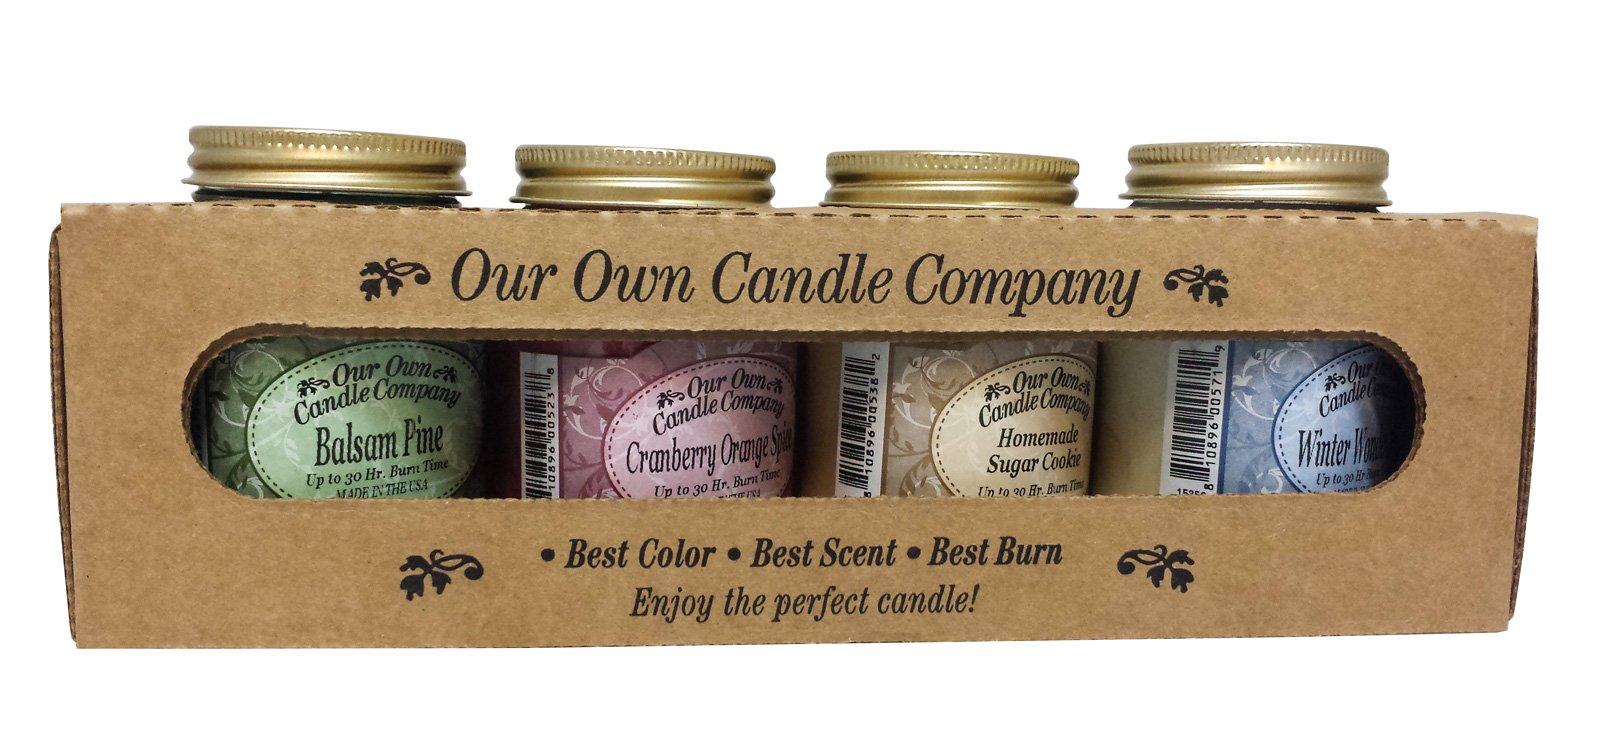 Our Own Candle Company 4 Pack Christmas Assortment Mini Mason Jar Candles - 3.5 Oz Balsam Pine, 3.5 Oz Cranberry Orange Spice, 3.5 Oz Homemade Sugar Cookie, 3.5 Oz Winter Wonderland